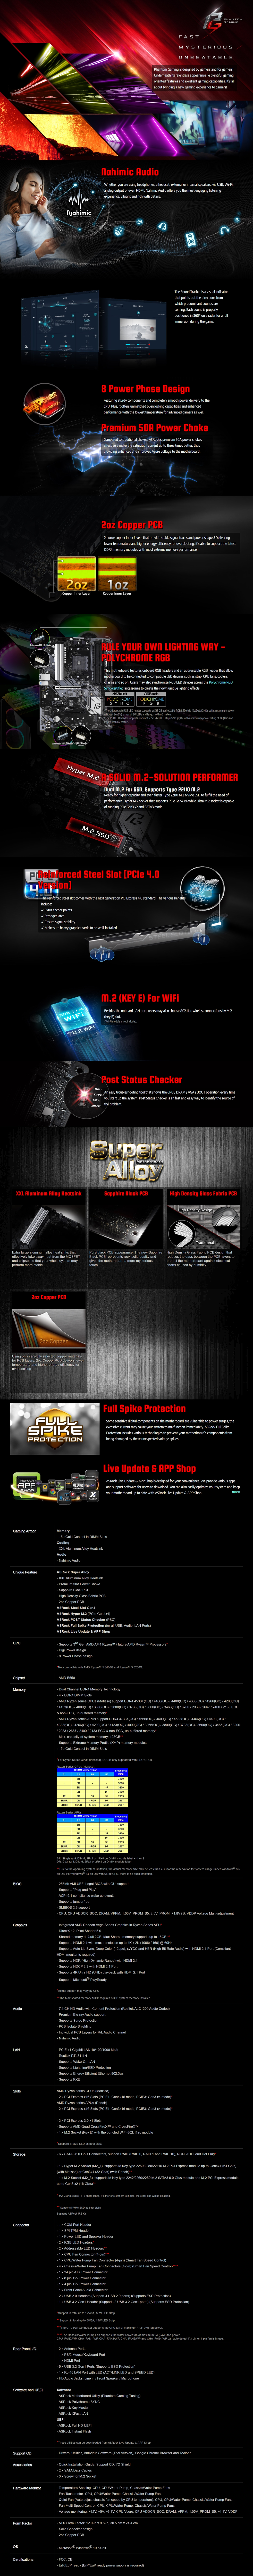 A large marketing image providing additional information about the product ASRock B550 Phantom Gaming 4 AM4 ATX Desktop Motherboard - Additional alt info not provided